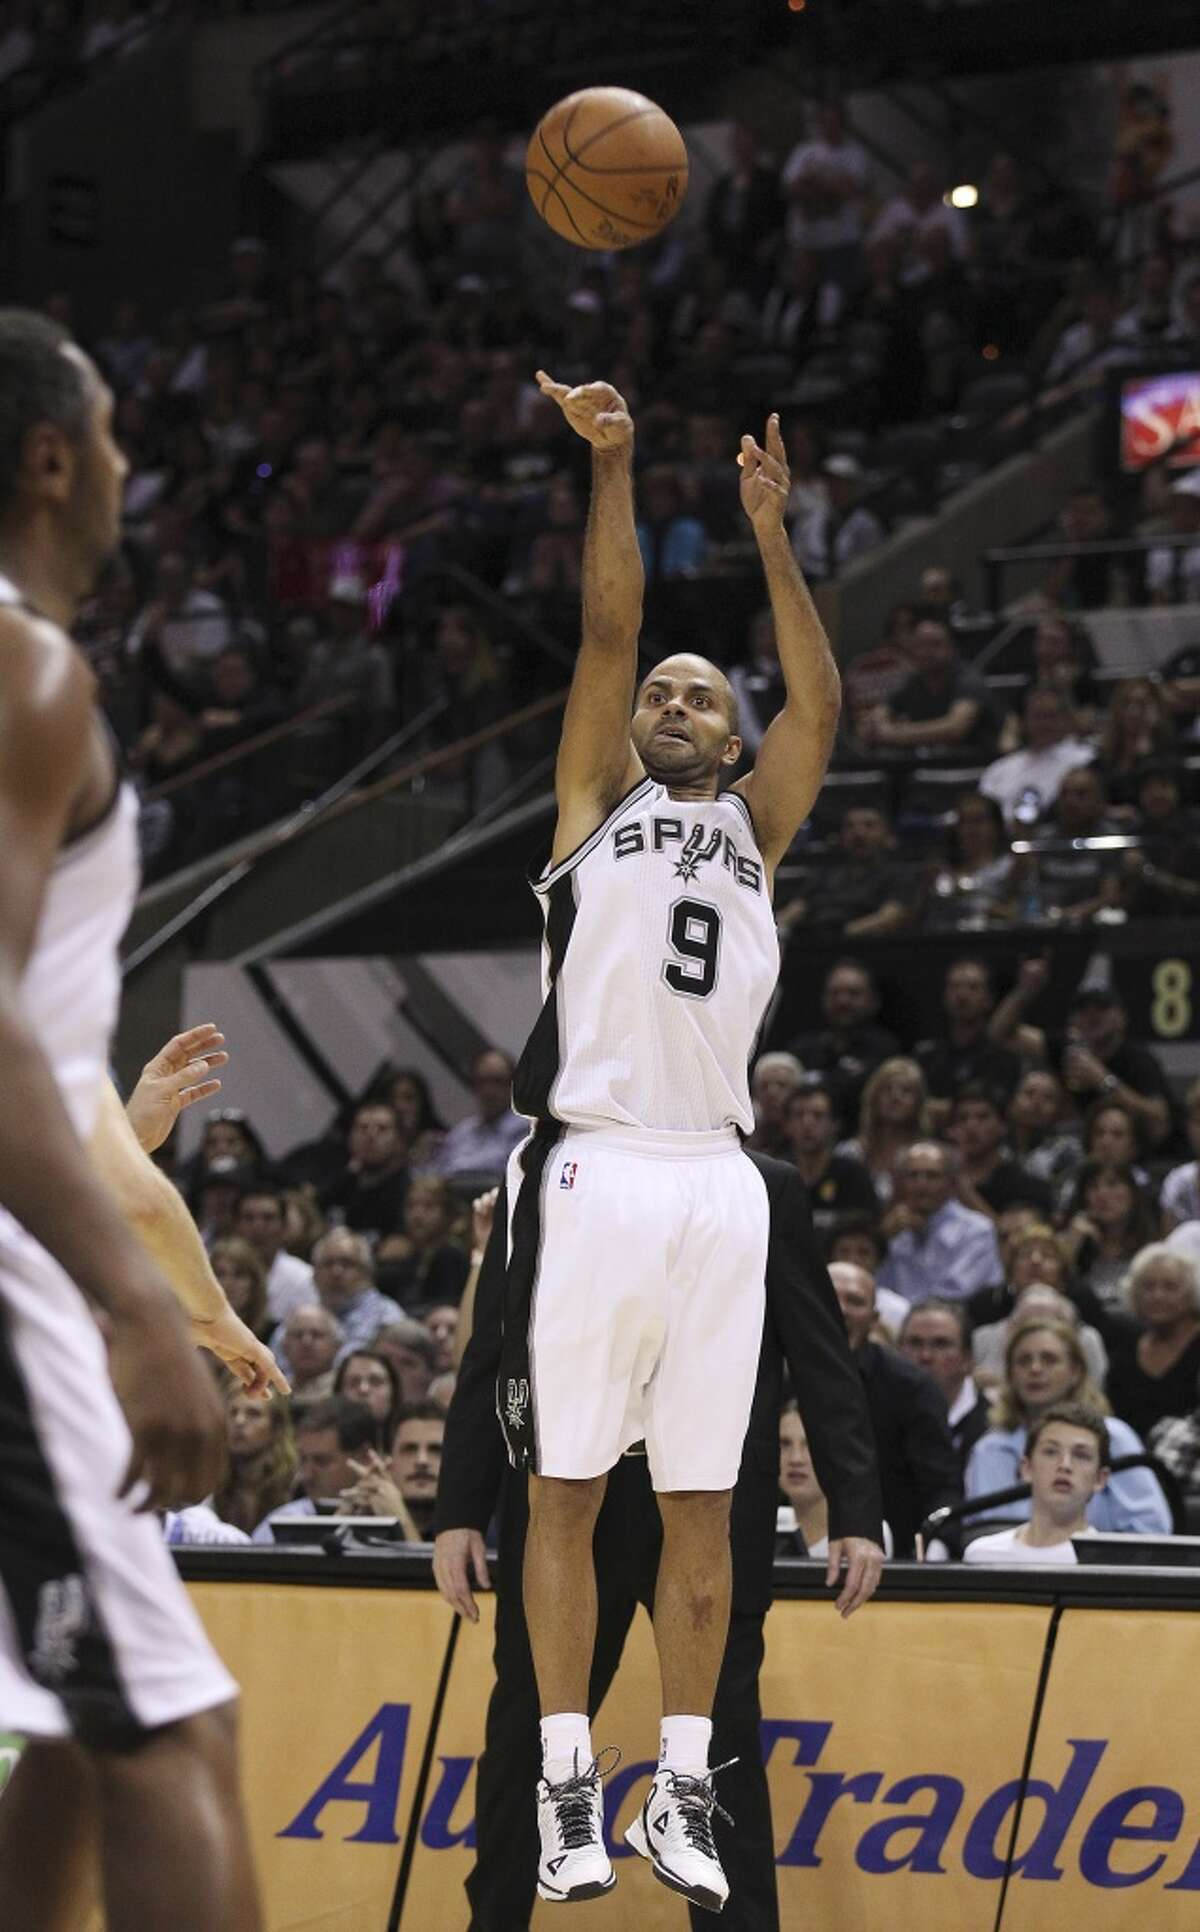 Spurs' Tony Parker (09) shoots a three late in the game against the Dallas Mavericks at the AT&T Center on Tuesday, Oct. 28, 2014. Spurs defeat the Mavericks, 101-100. (Kin Man Hui/San Antonio Express-News)